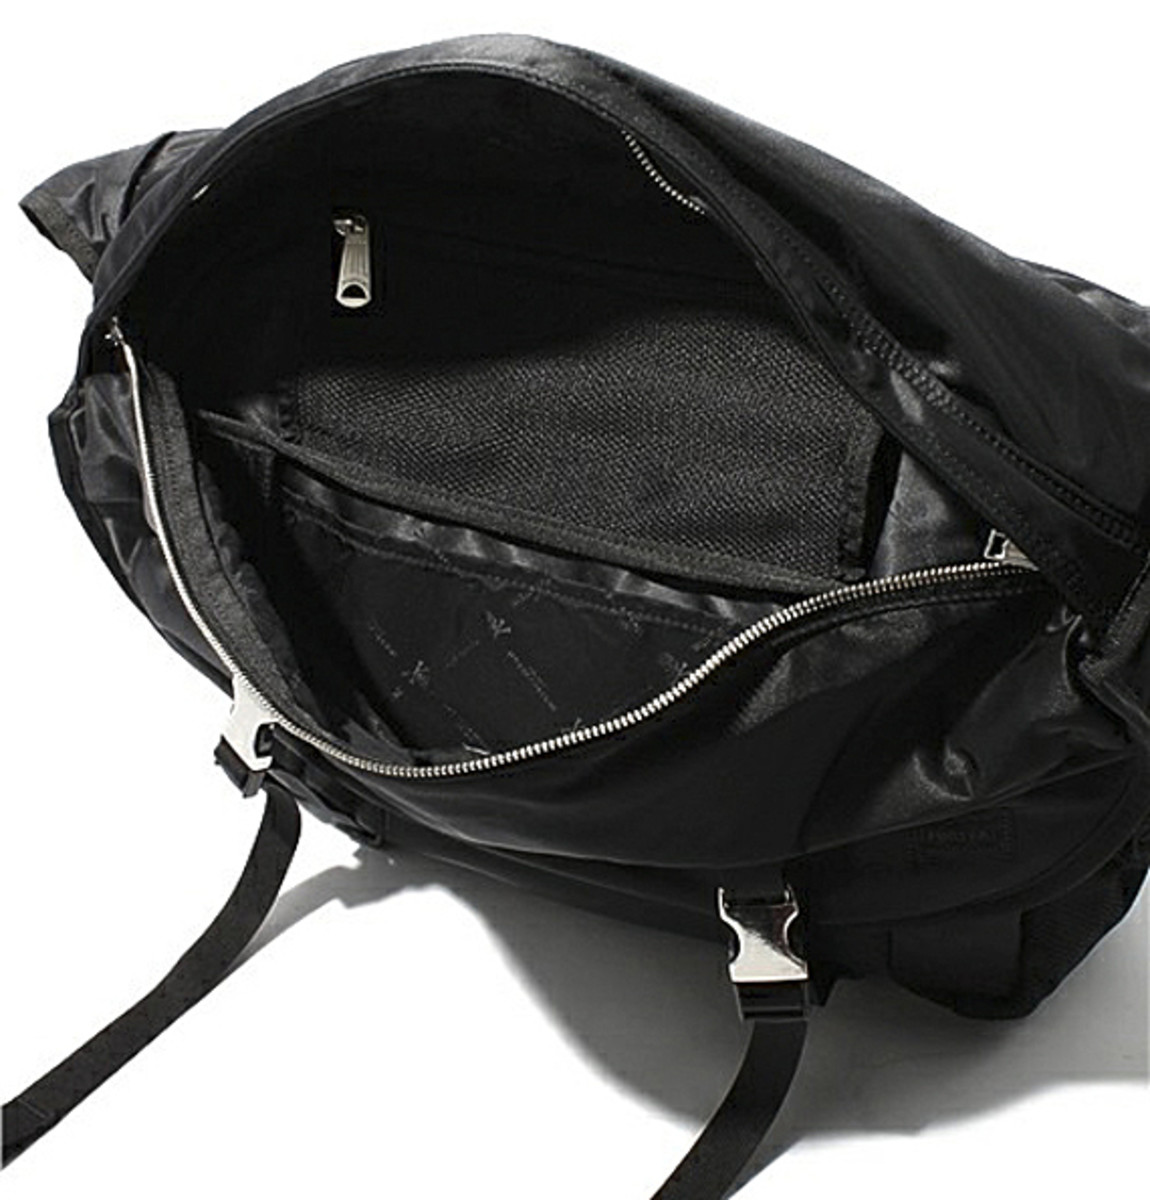 mastermind-JAPAN-PORTER-Messenger-Bag-05 (1)